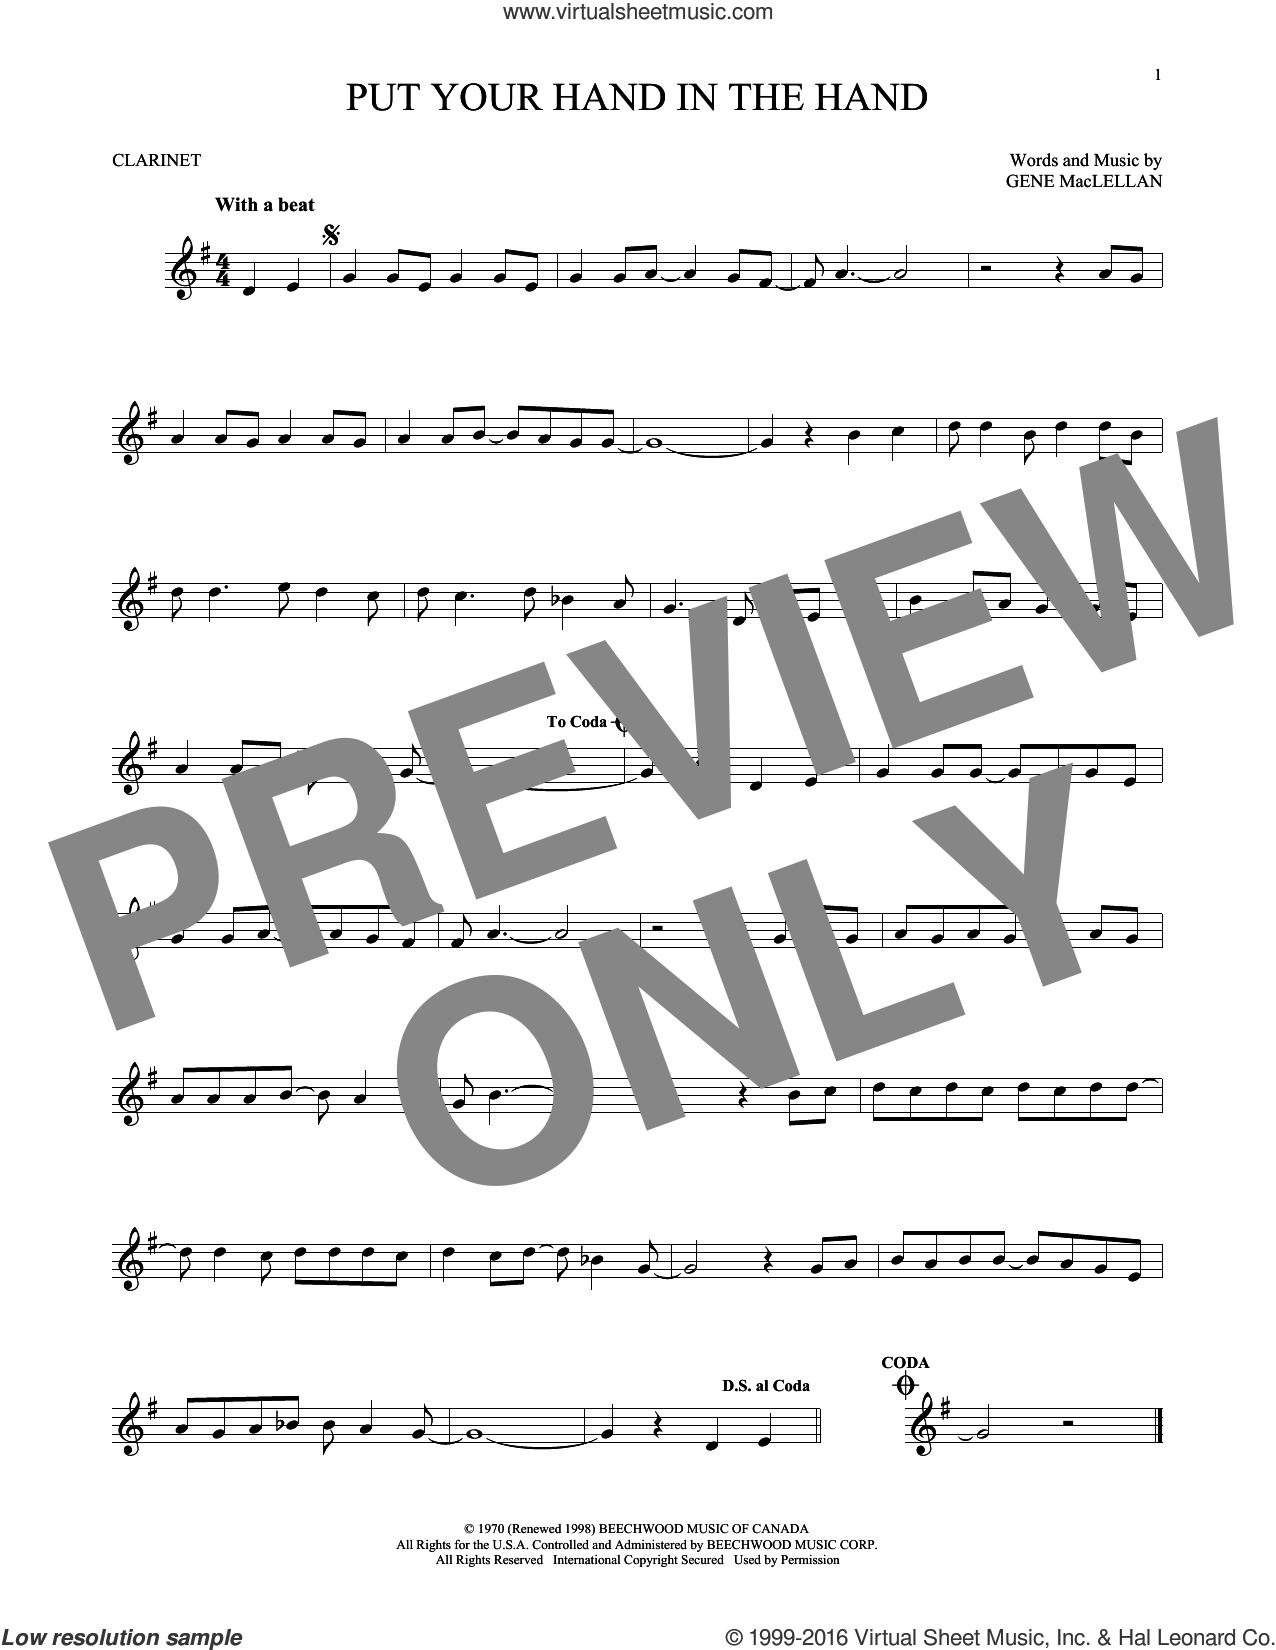 Put Your Hand In The Hand sheet music for clarinet solo by Gene MacLellan. Score Image Preview.